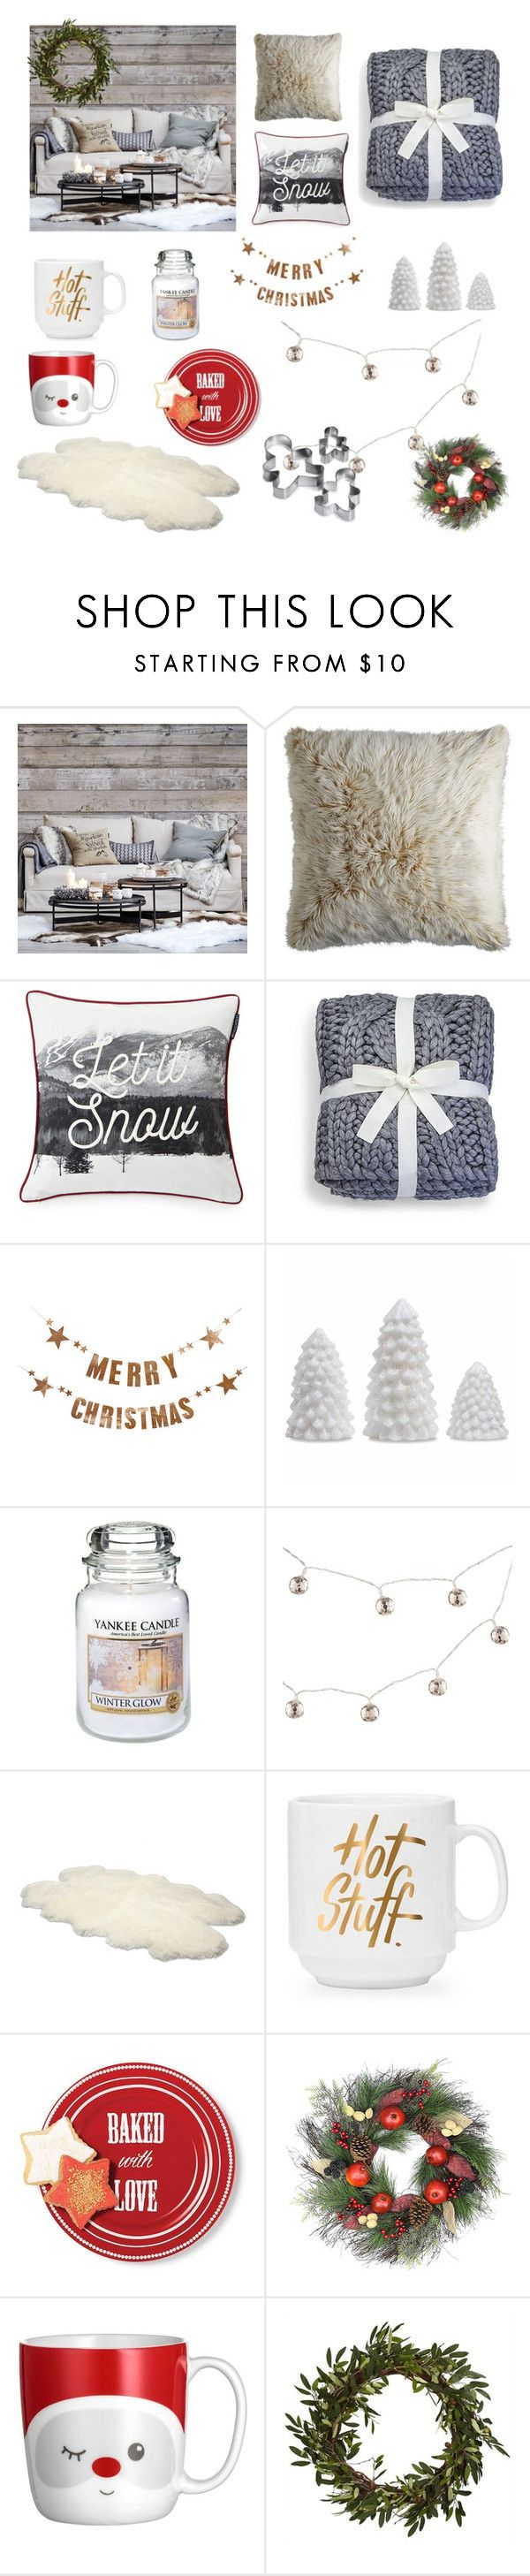 """Winter interior by Sweetlittlebunny"" by sweetlittlebunny on Polyvore featuring interior, interiors, interior design, dom, home decor, interior decorating, Eichholtz, Pier 1 Imports, Lexington i UGG"